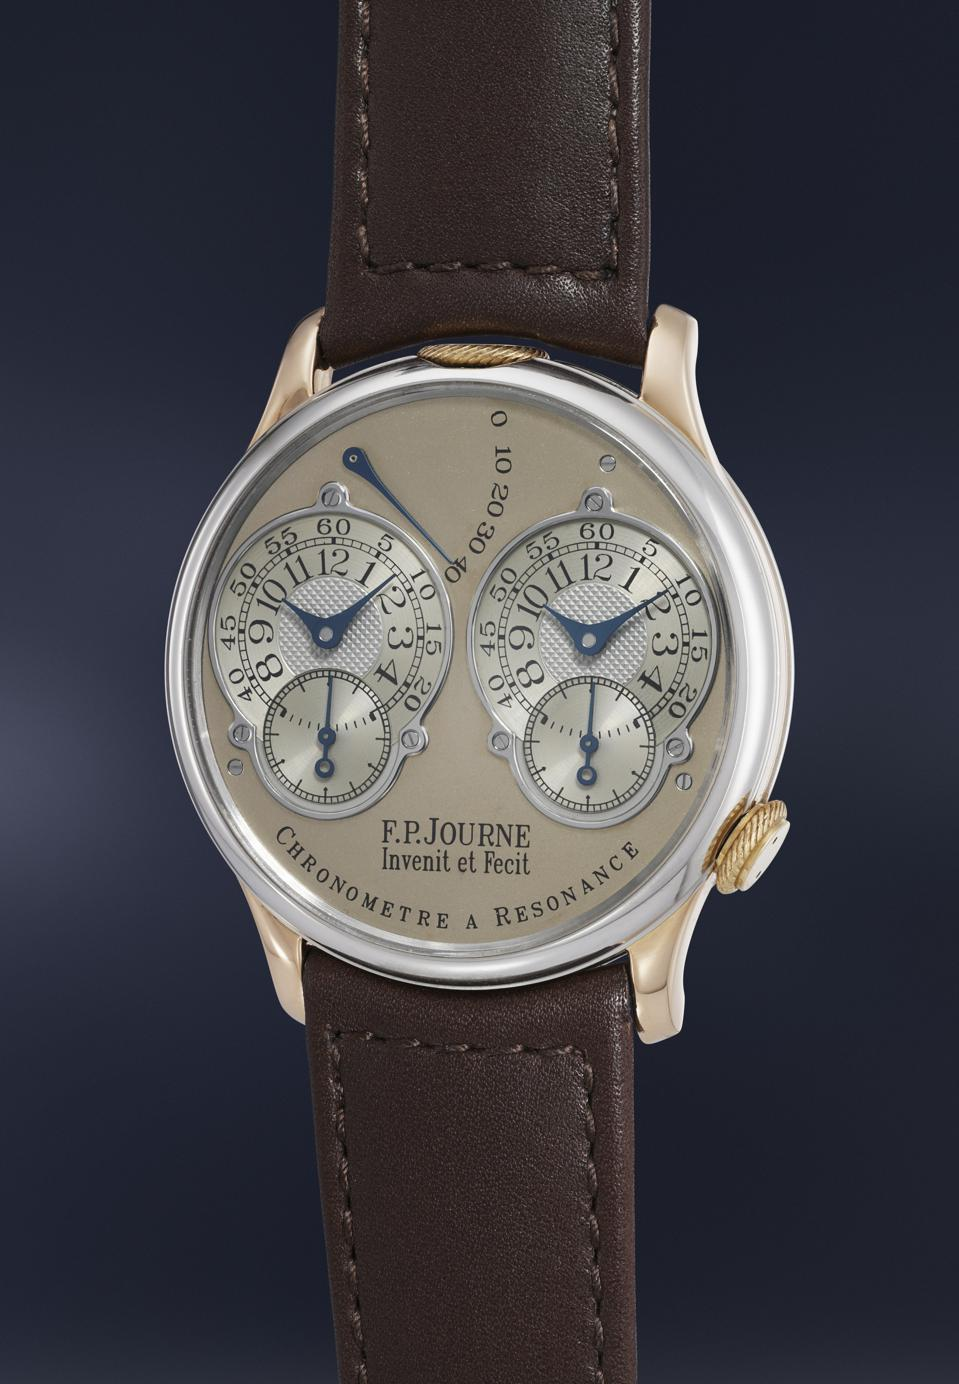 FP Journe Resonance fetched a record $2 million